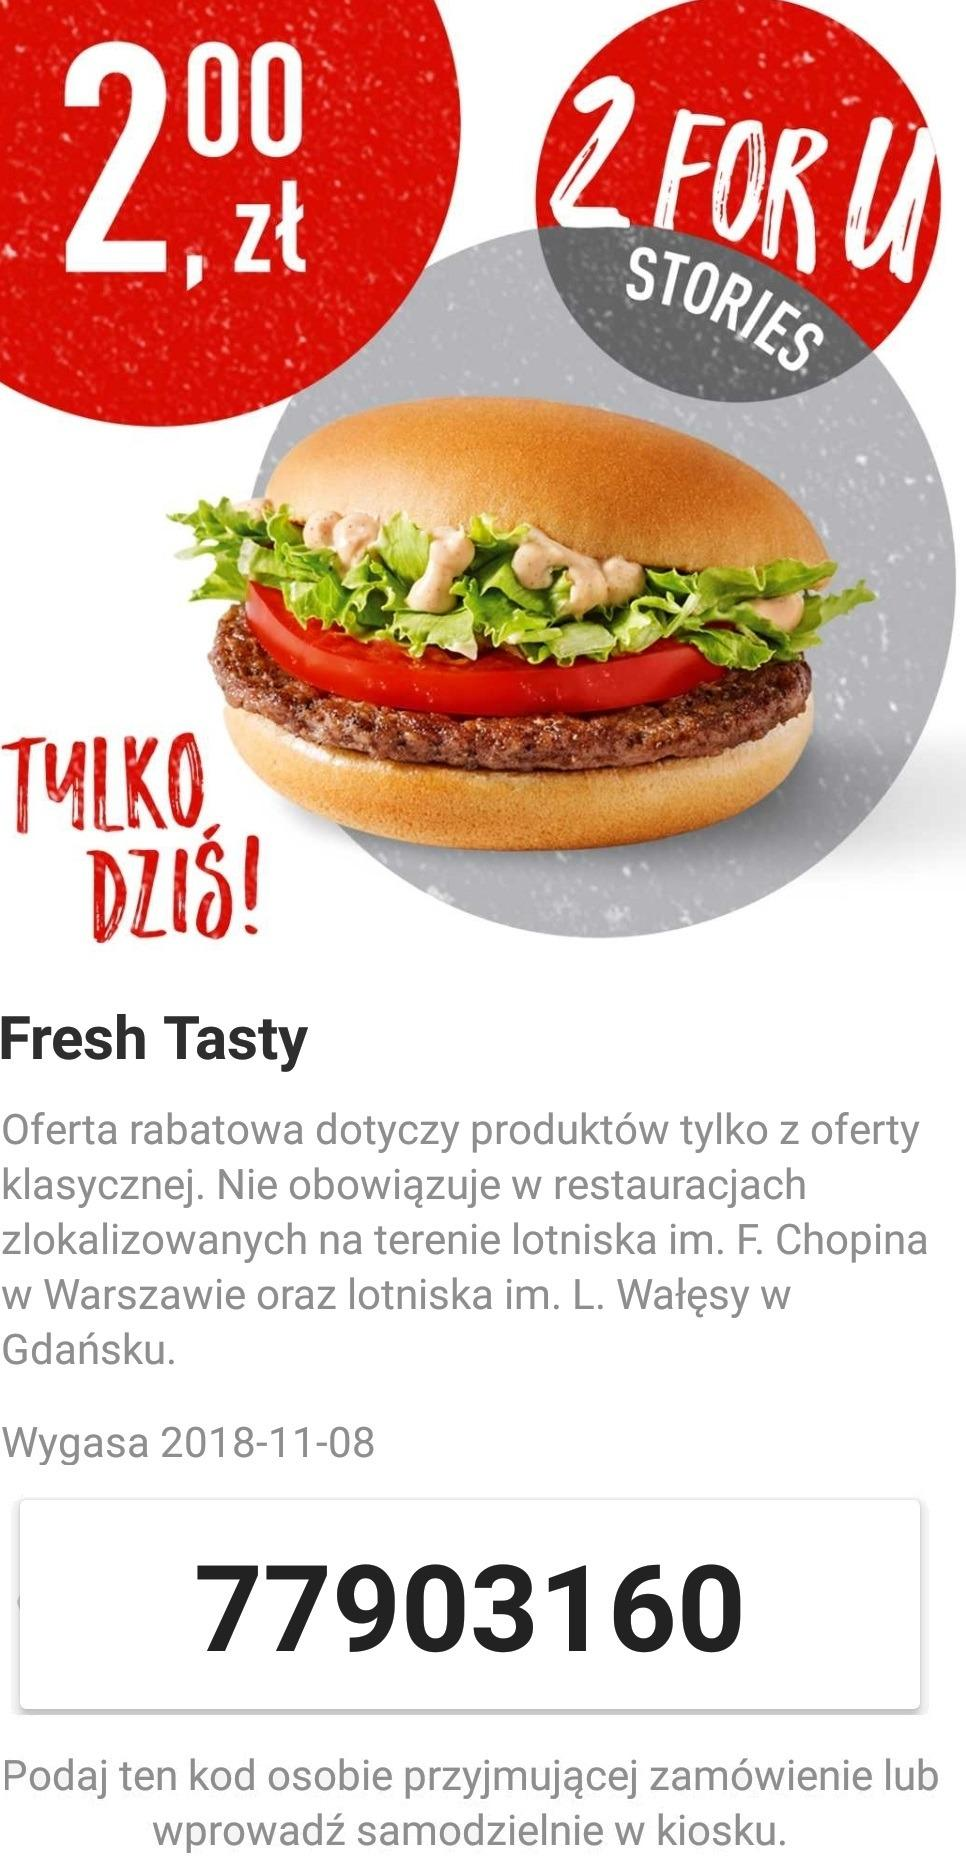 Gazetka promocyjna McDonalds do 08/11/2018 str.1